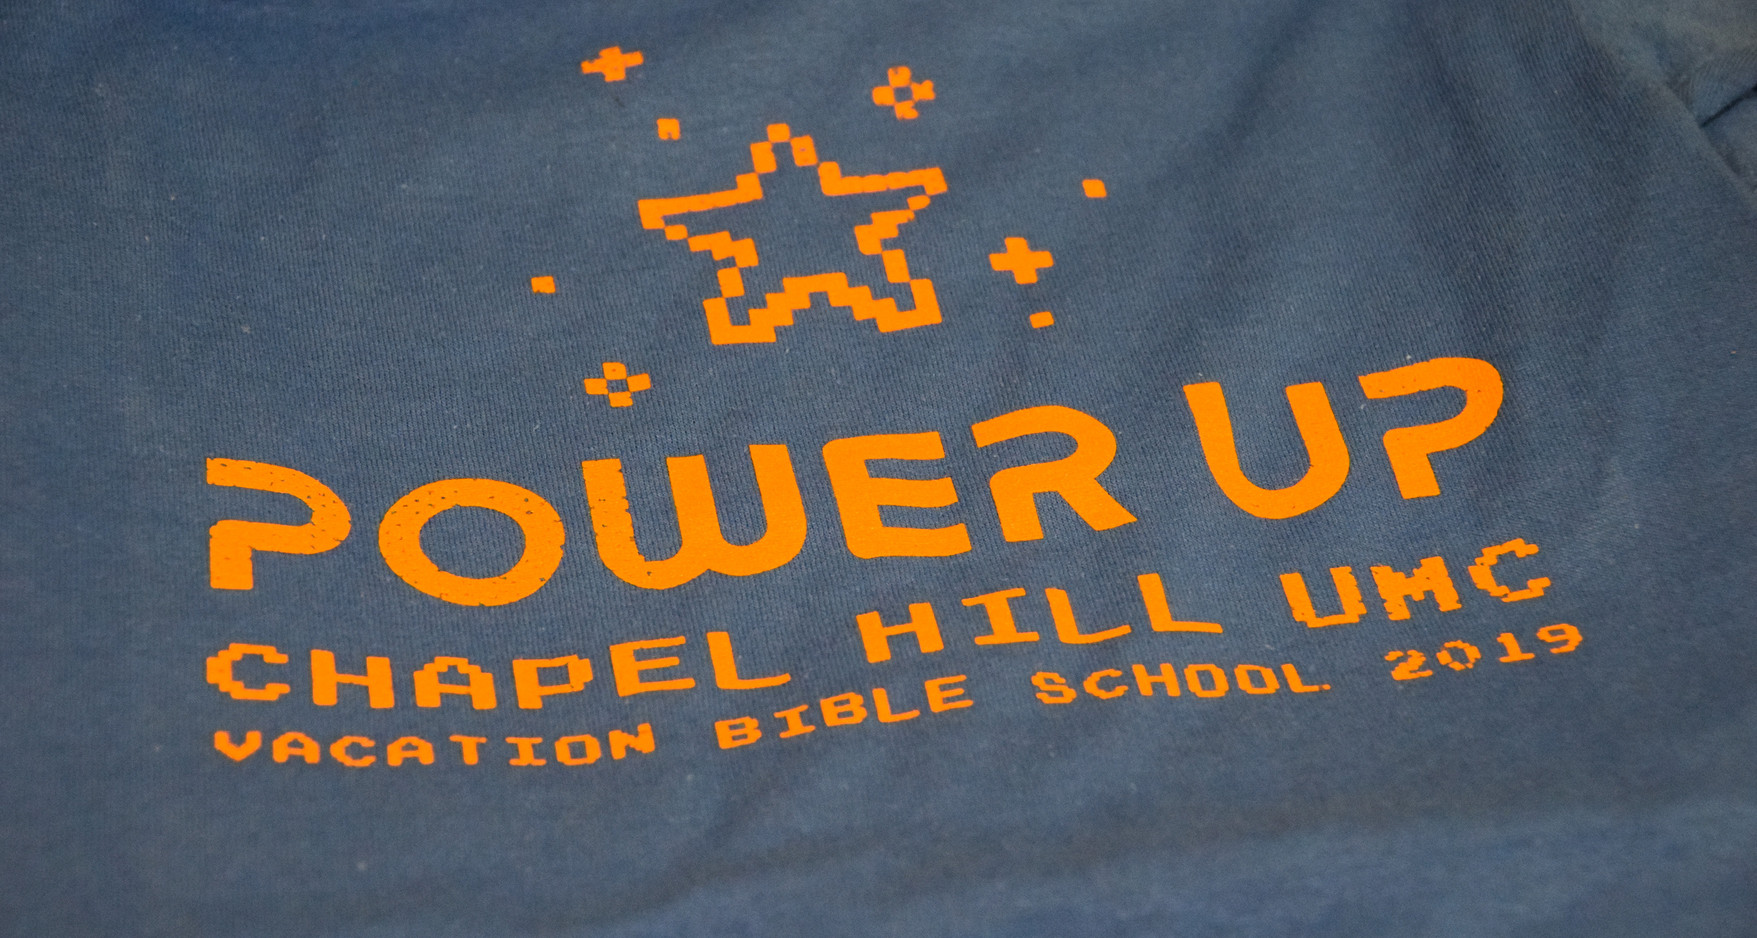 Wednesday 5pm - Time to Power Up at Chapel Hill